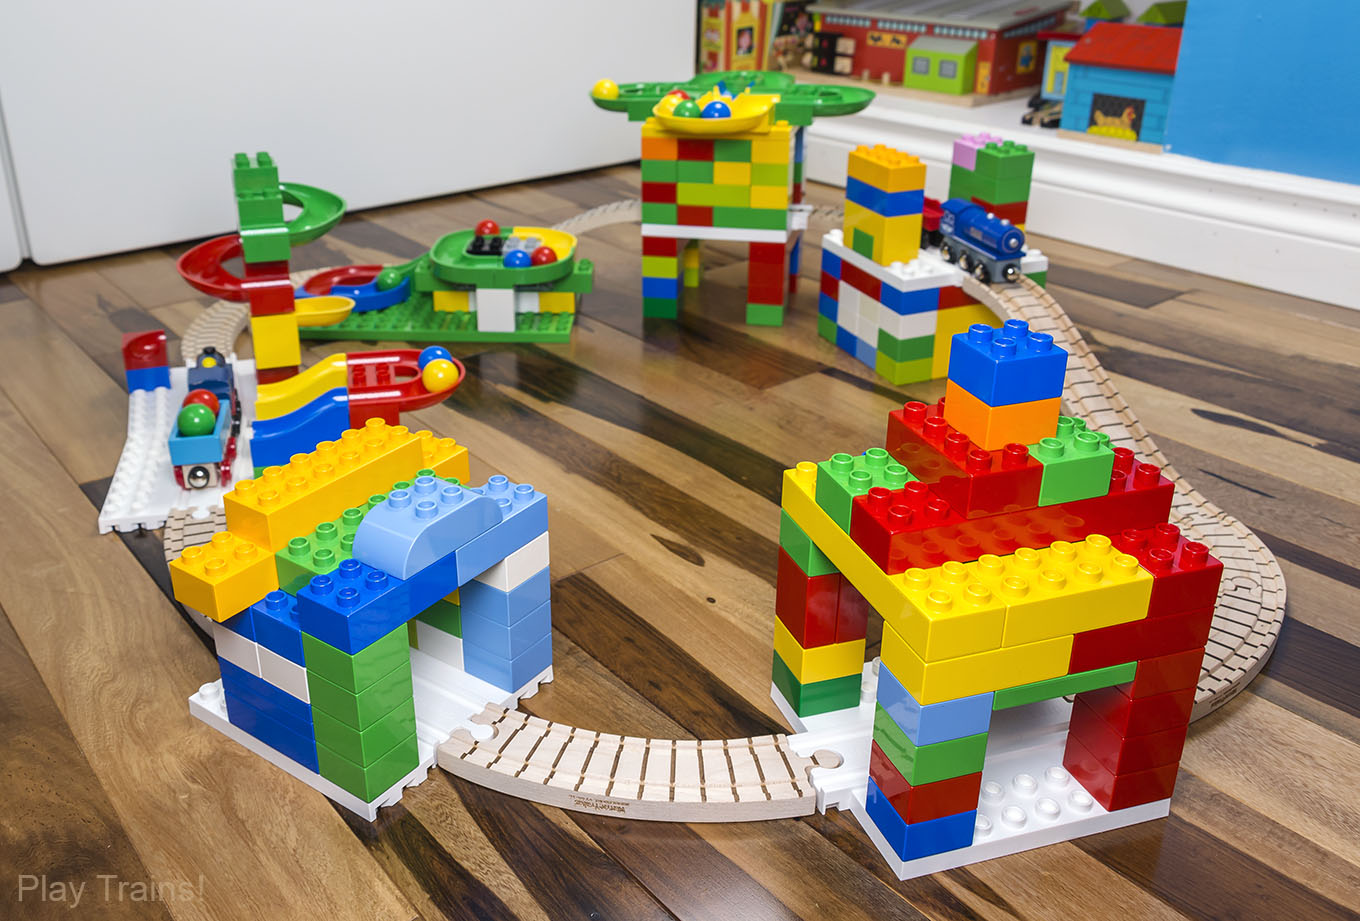 Dreamup Toys Wooden Train Set with DUPLO-compatible Block Platforms